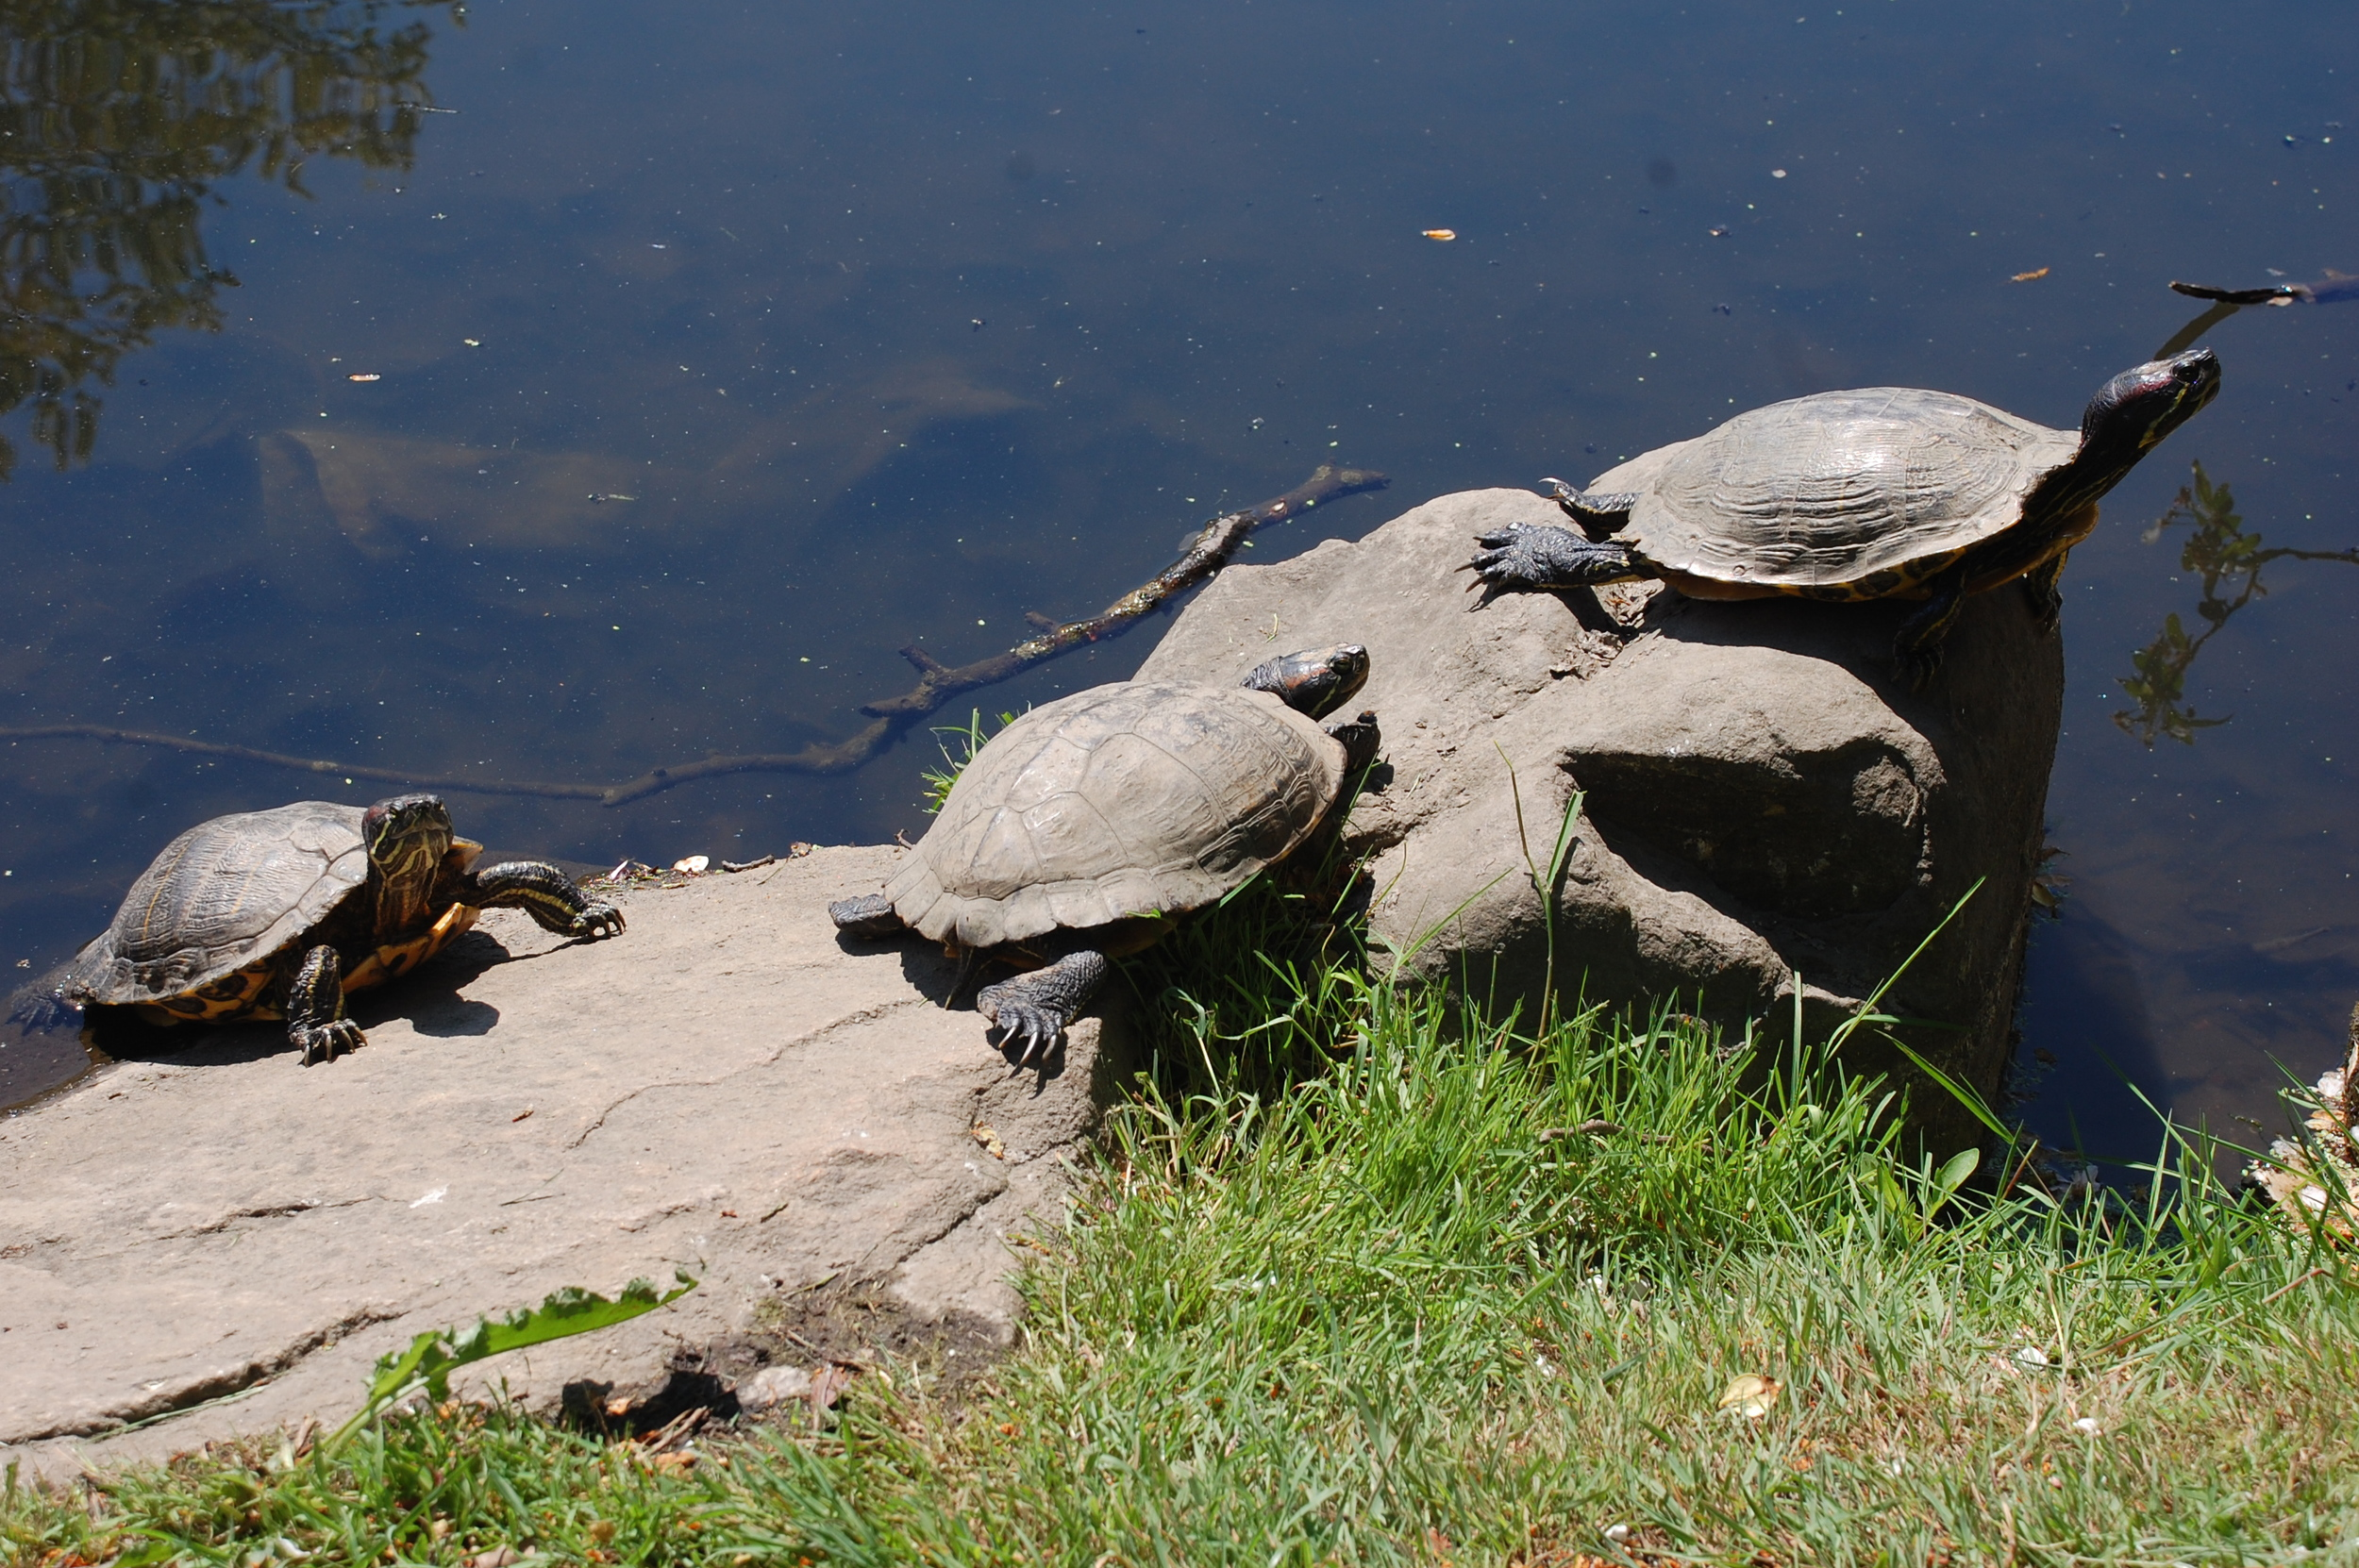 Eastern painted turtle (left) and red-eared sliders basking in the Spring sun.  Photo by Cynthia Ehlinger.